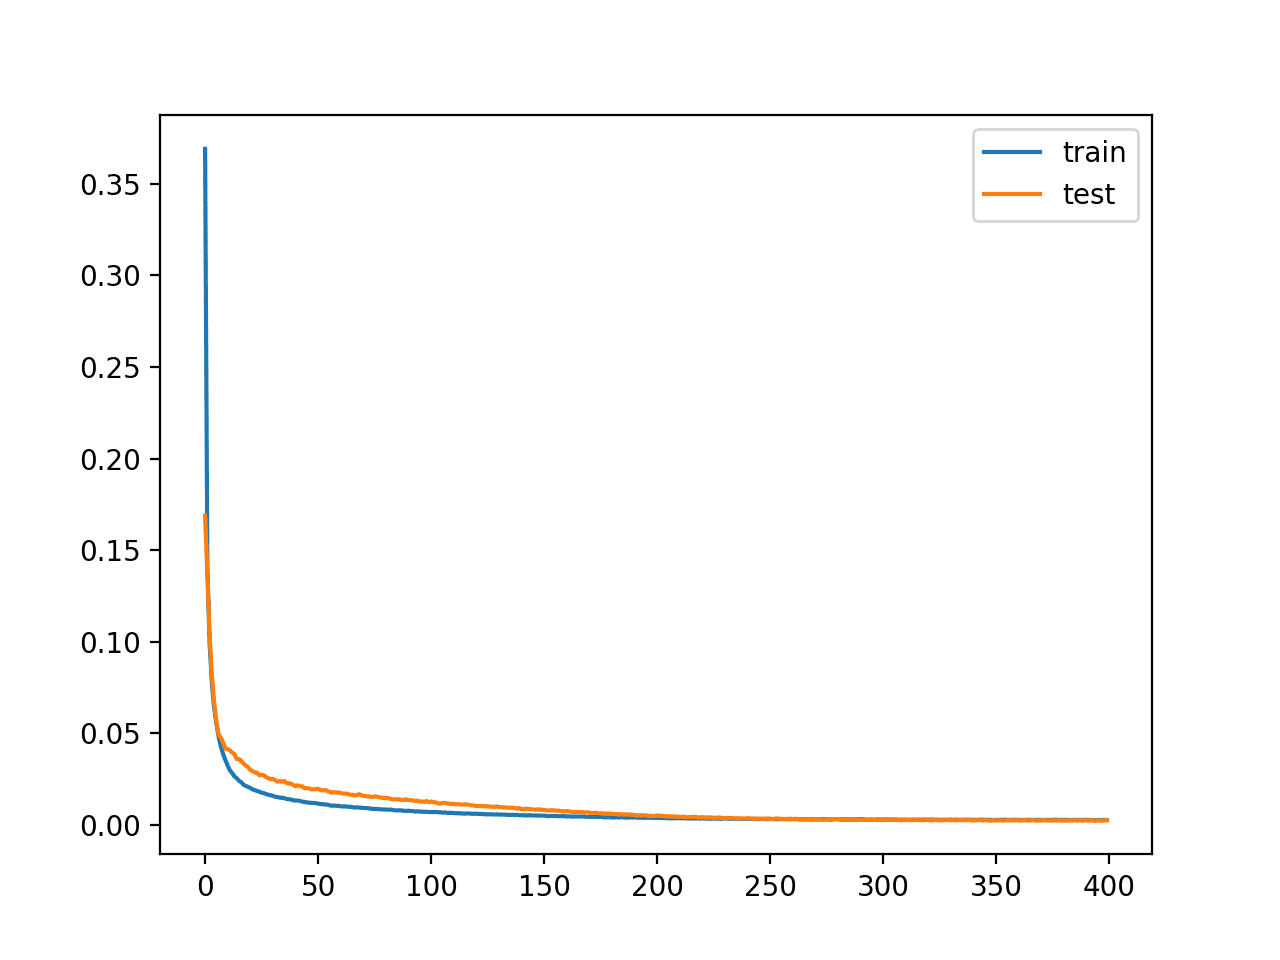 Learning Curves of Training the Autoencoder Model for Regression Without Compression